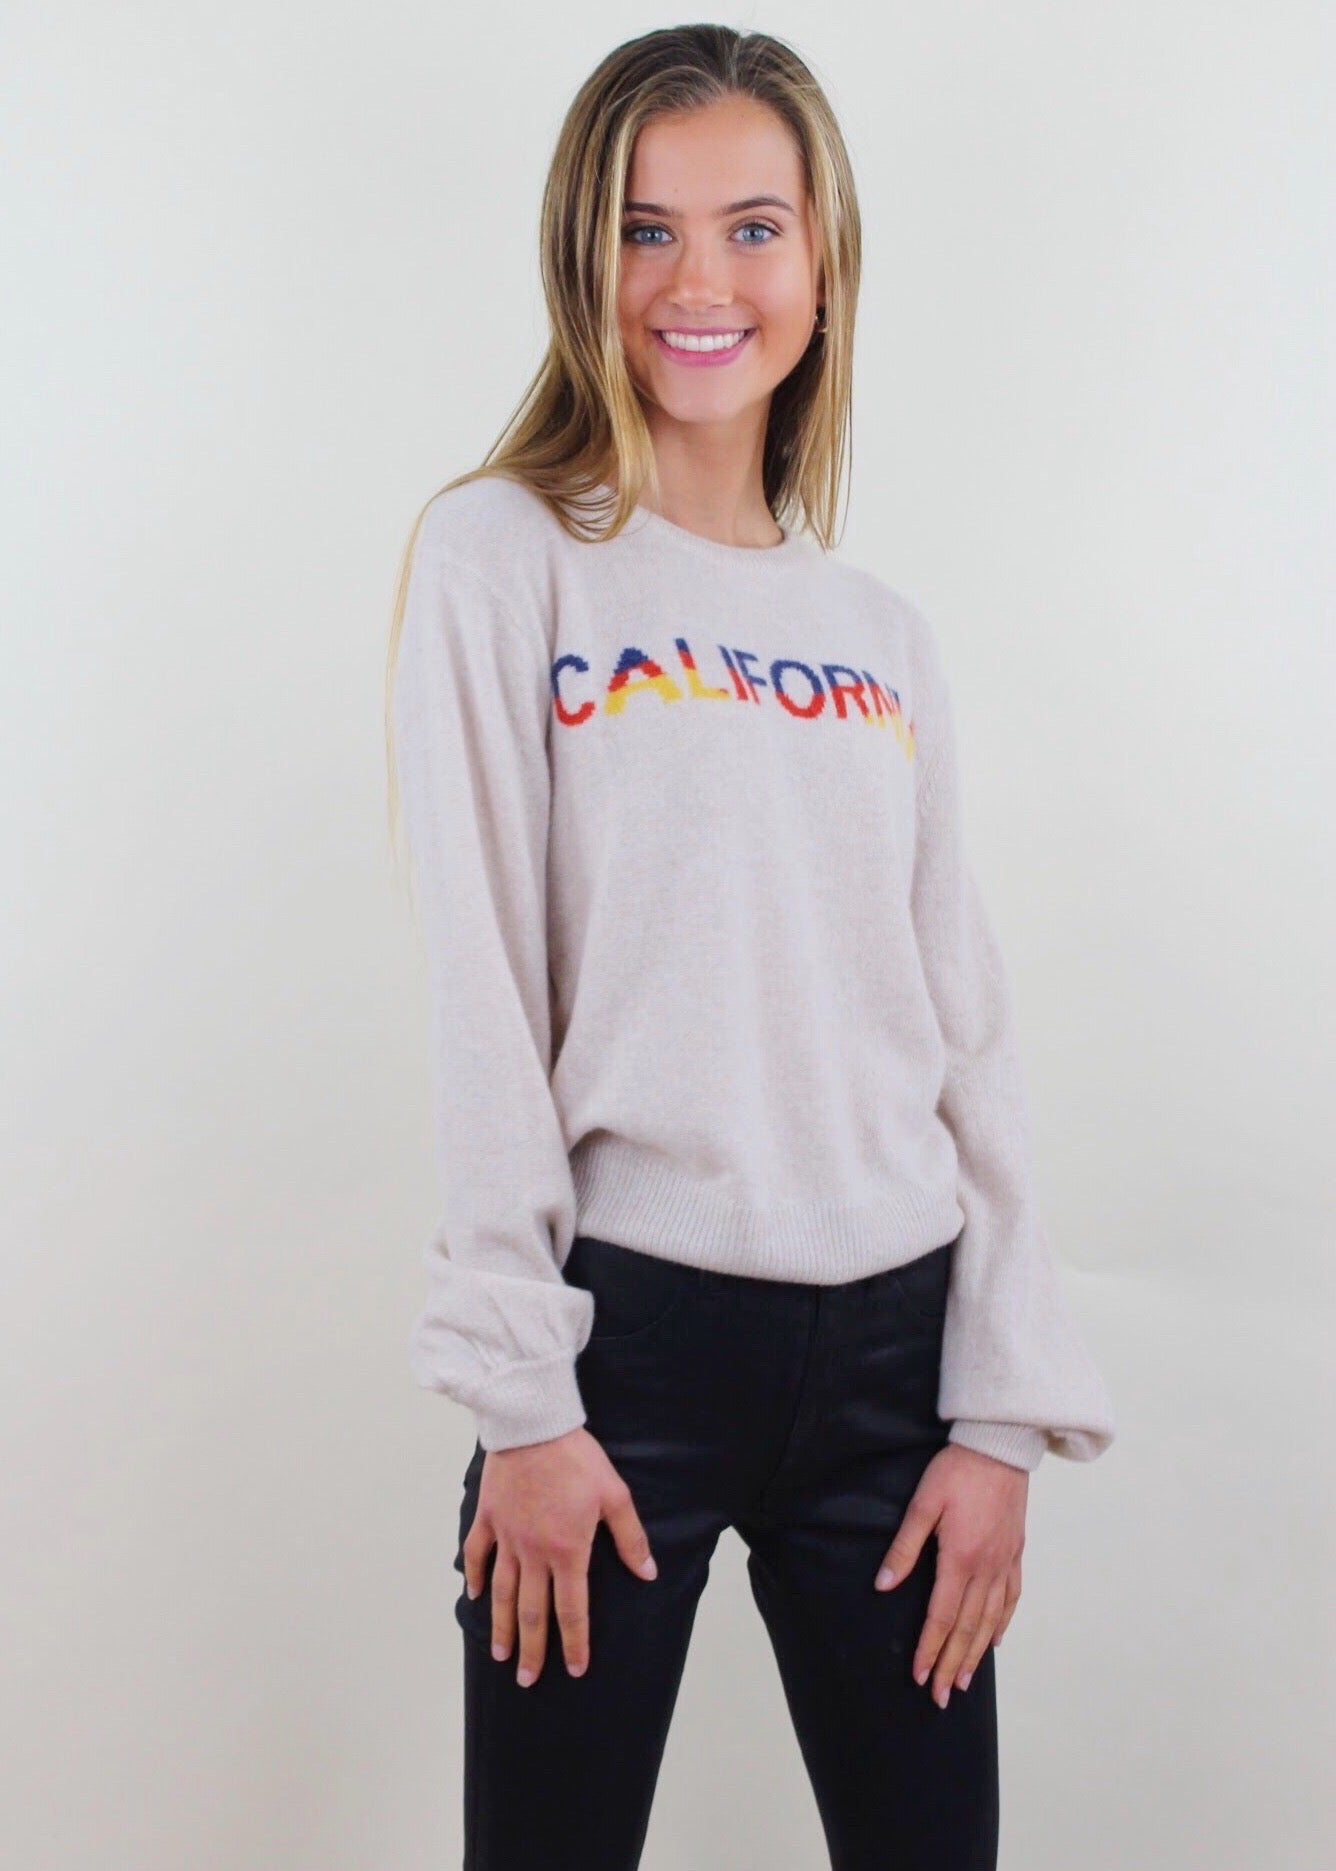 California Ryann Sweater